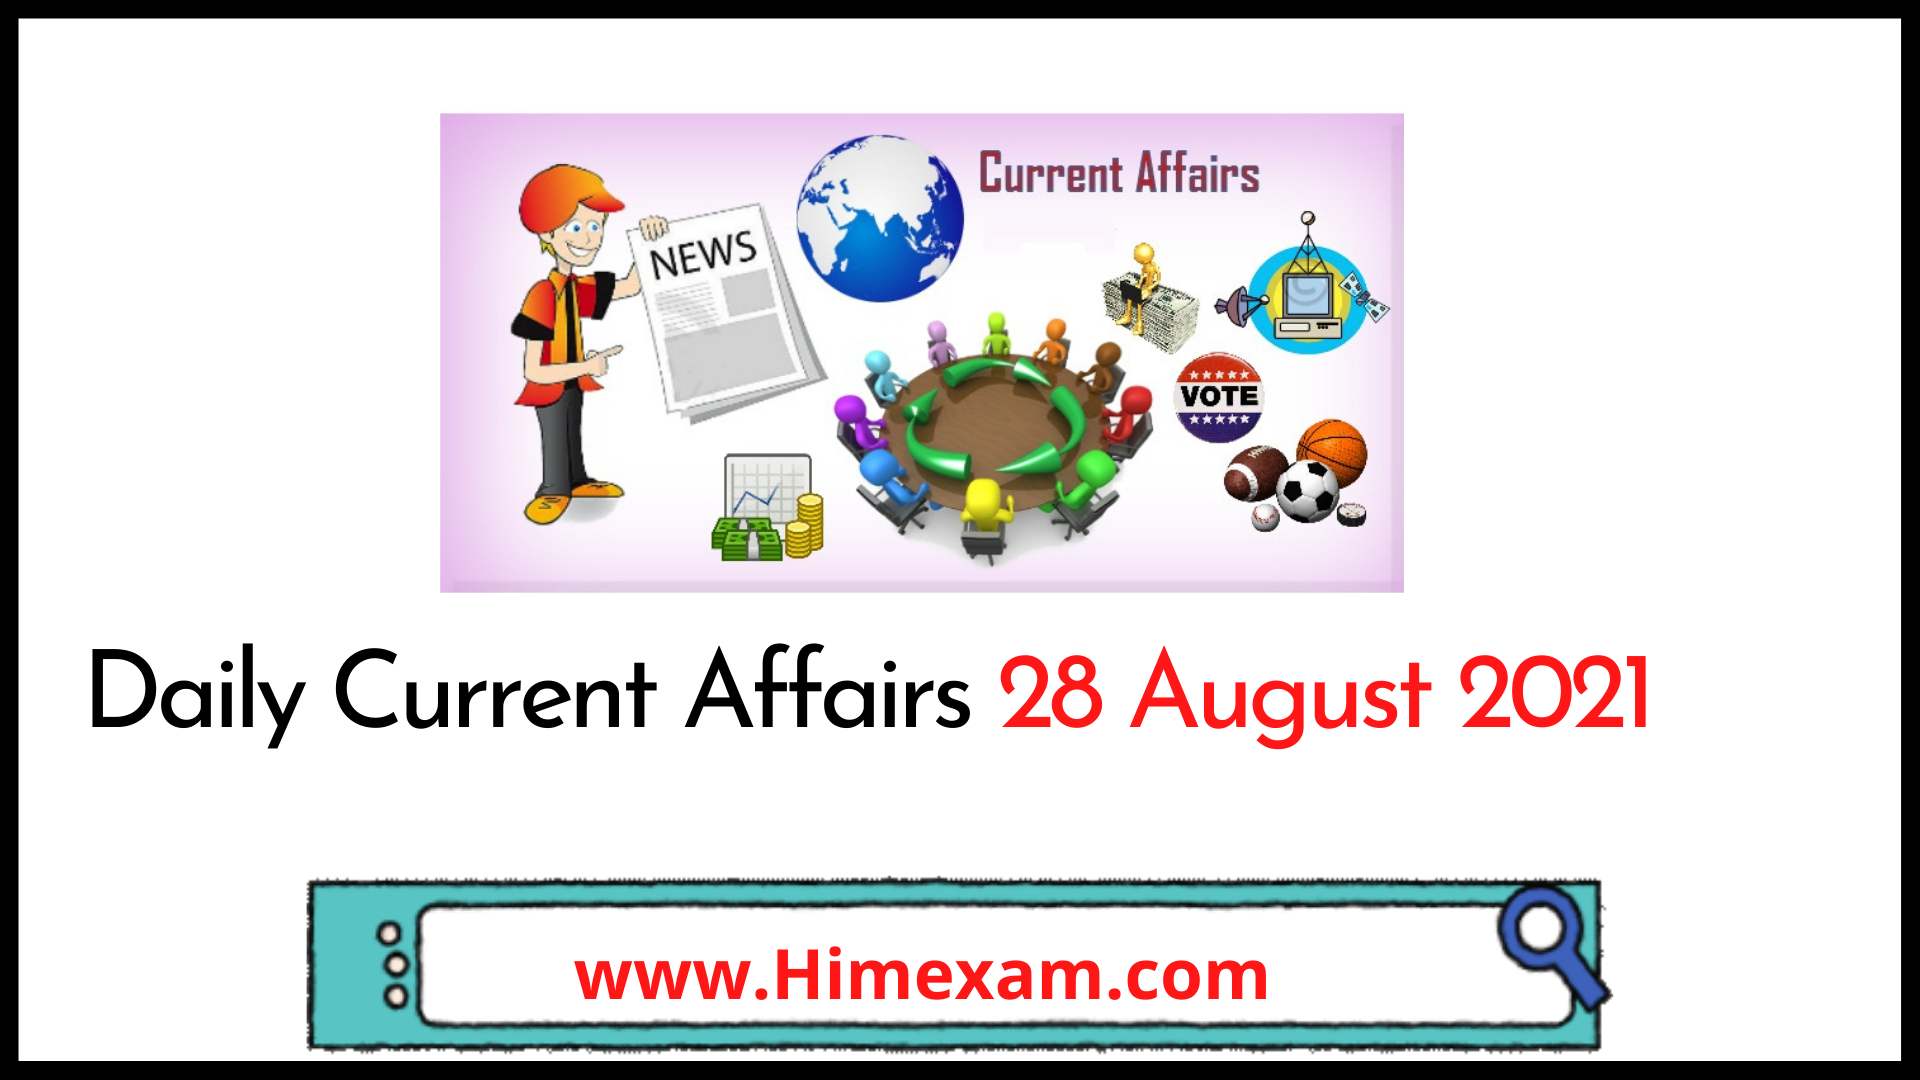 Daily Current Affairs 28 August 2021